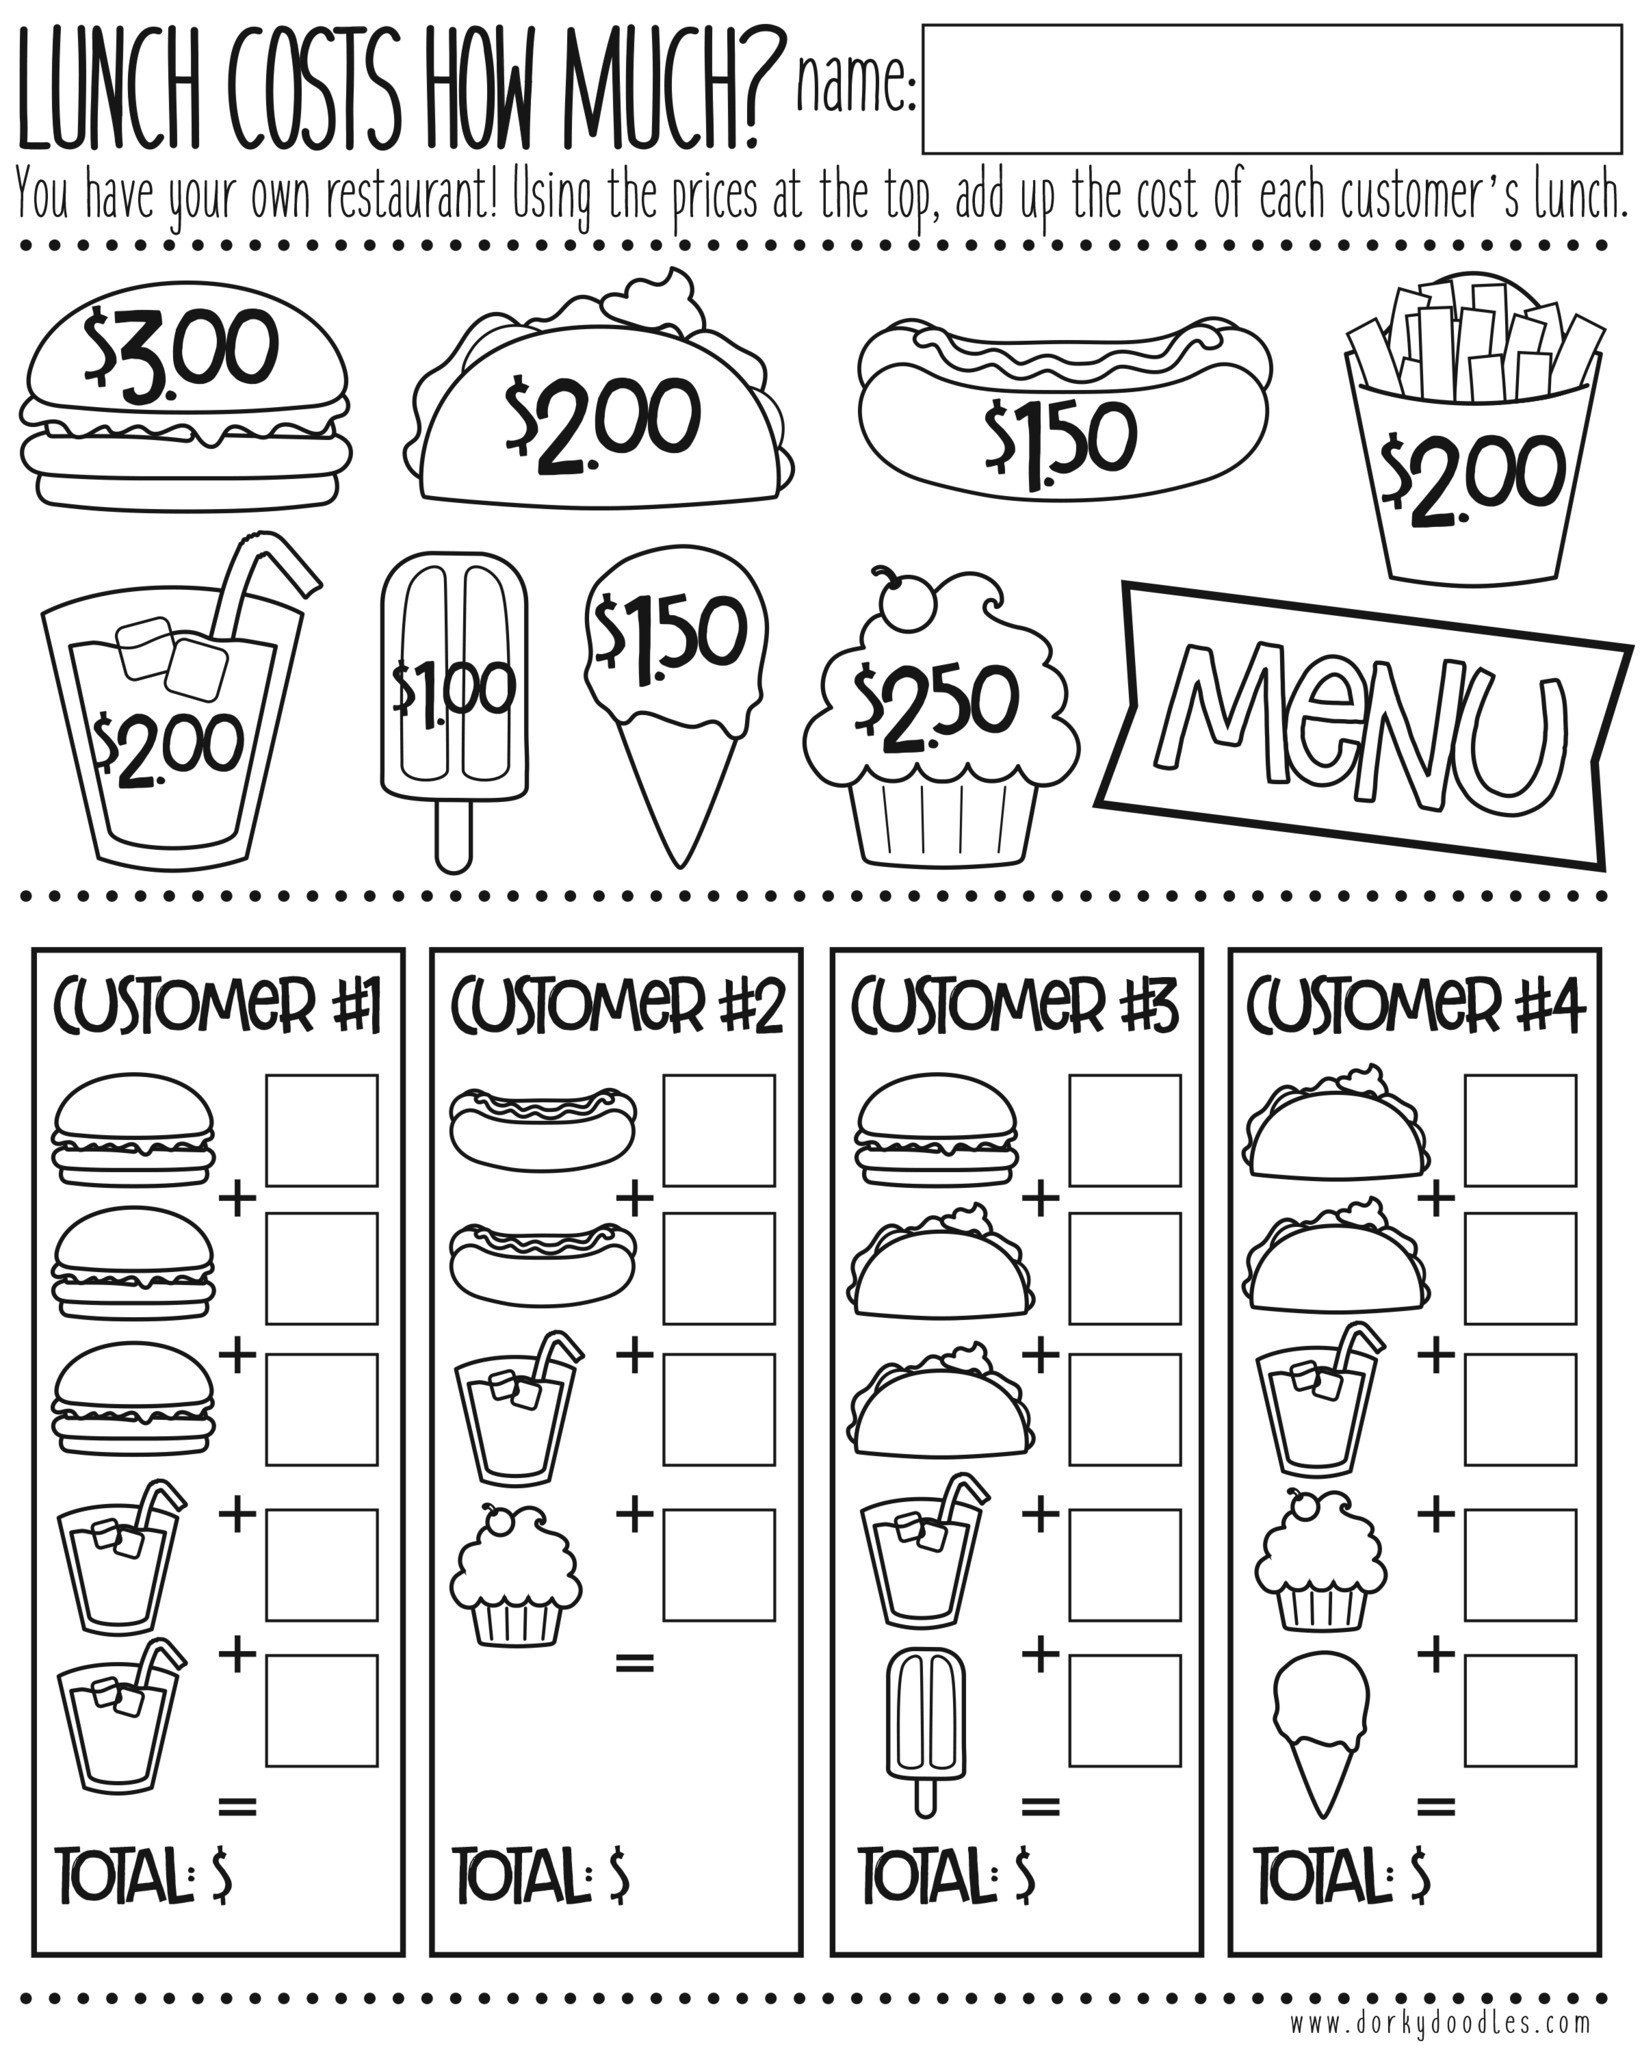 medium resolution of Money Math Practice - How Much Does Lunch Cost?   Money math